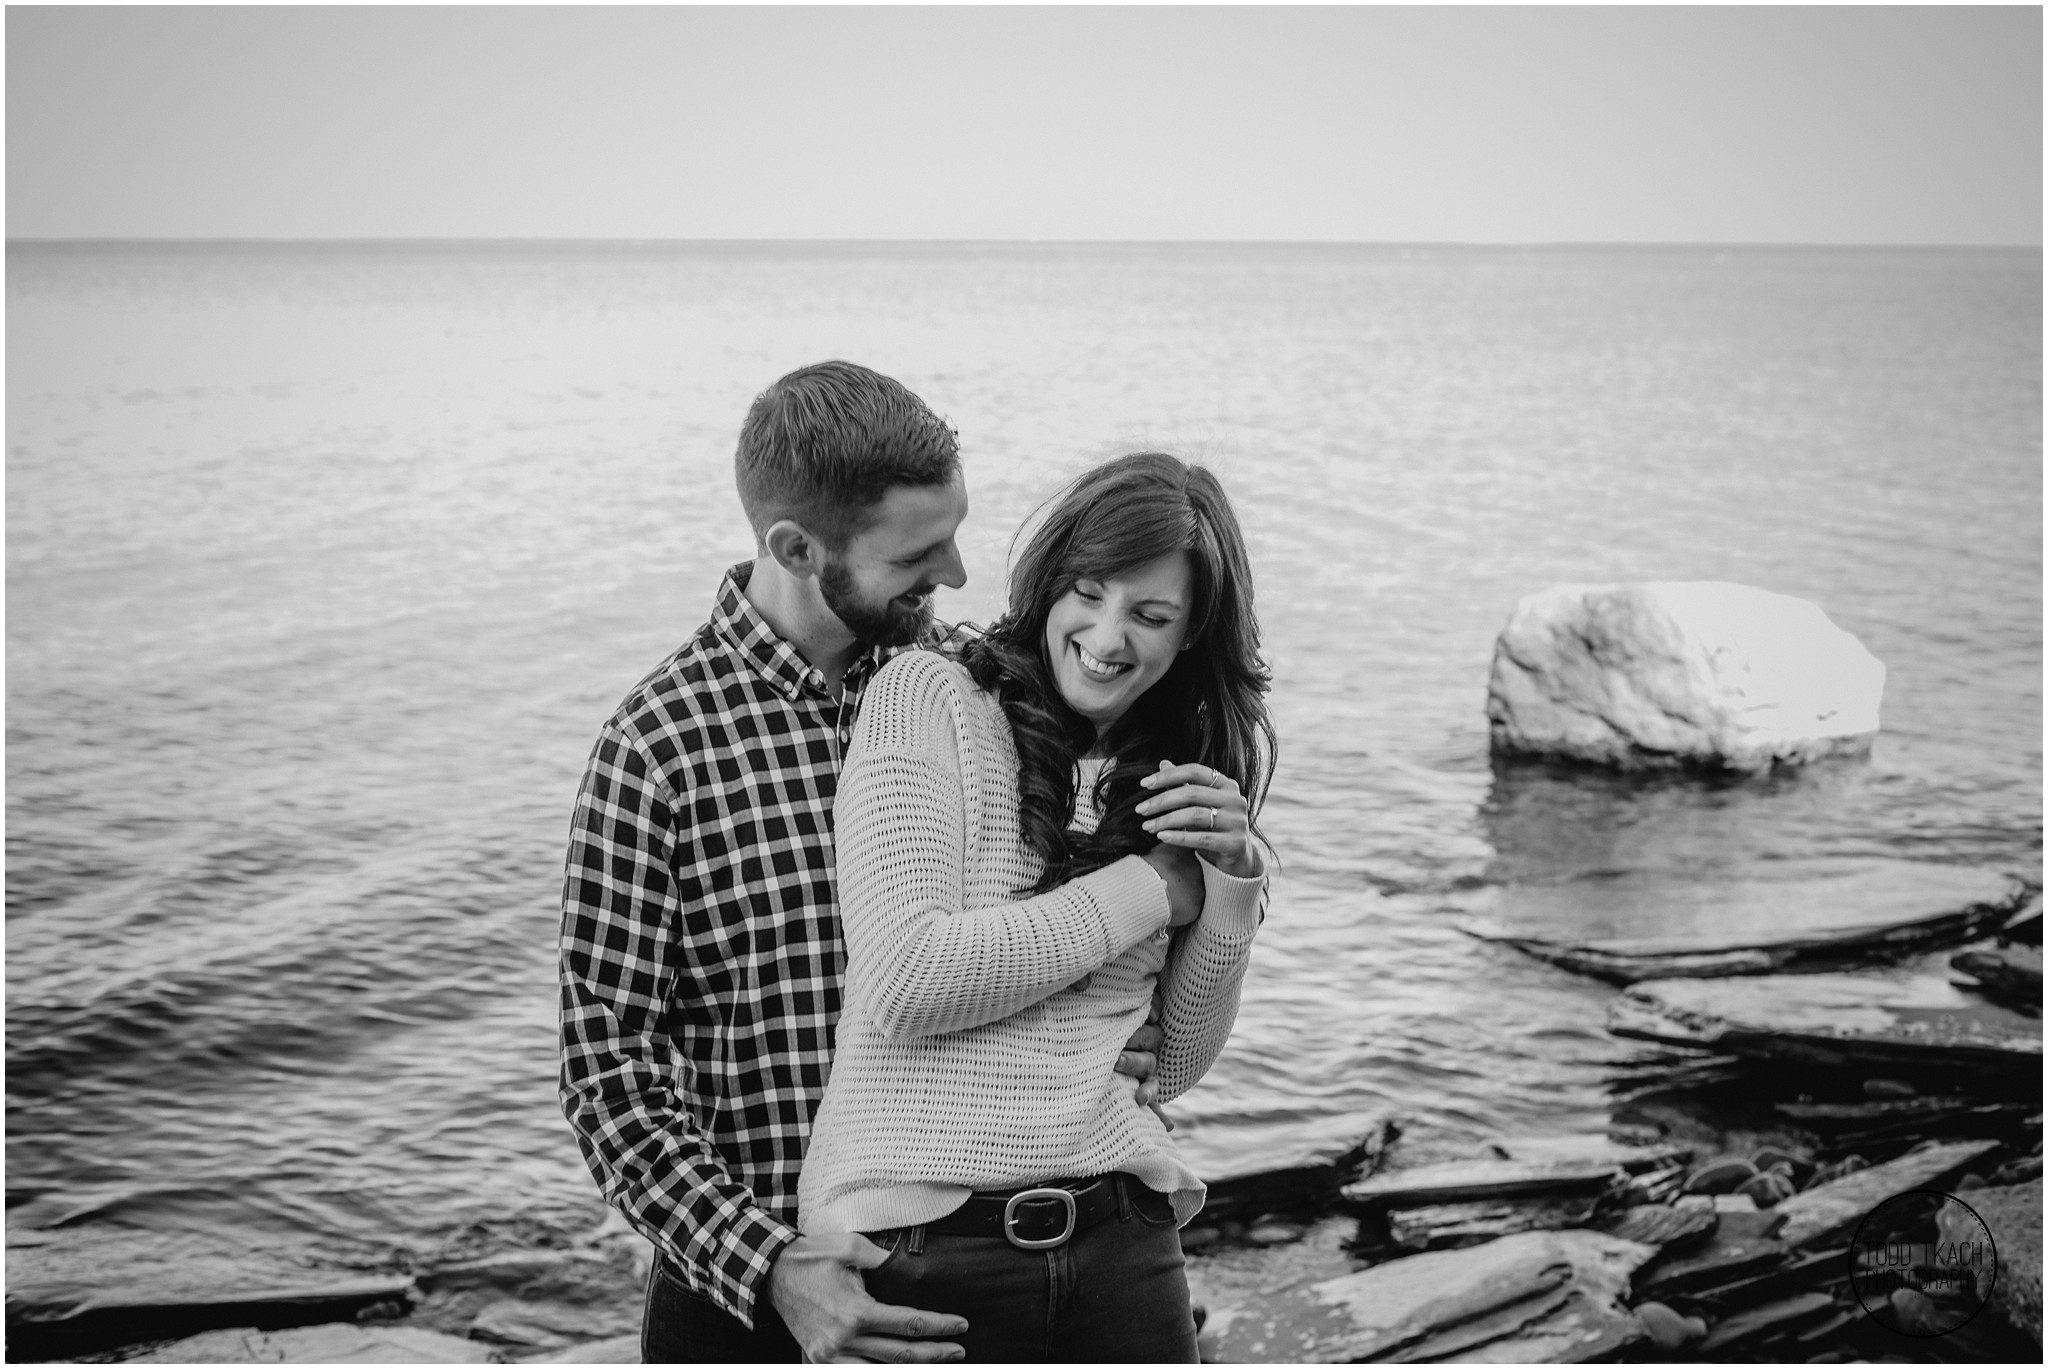 Jessica & Todd Engagement Water Portrait Laughter BW